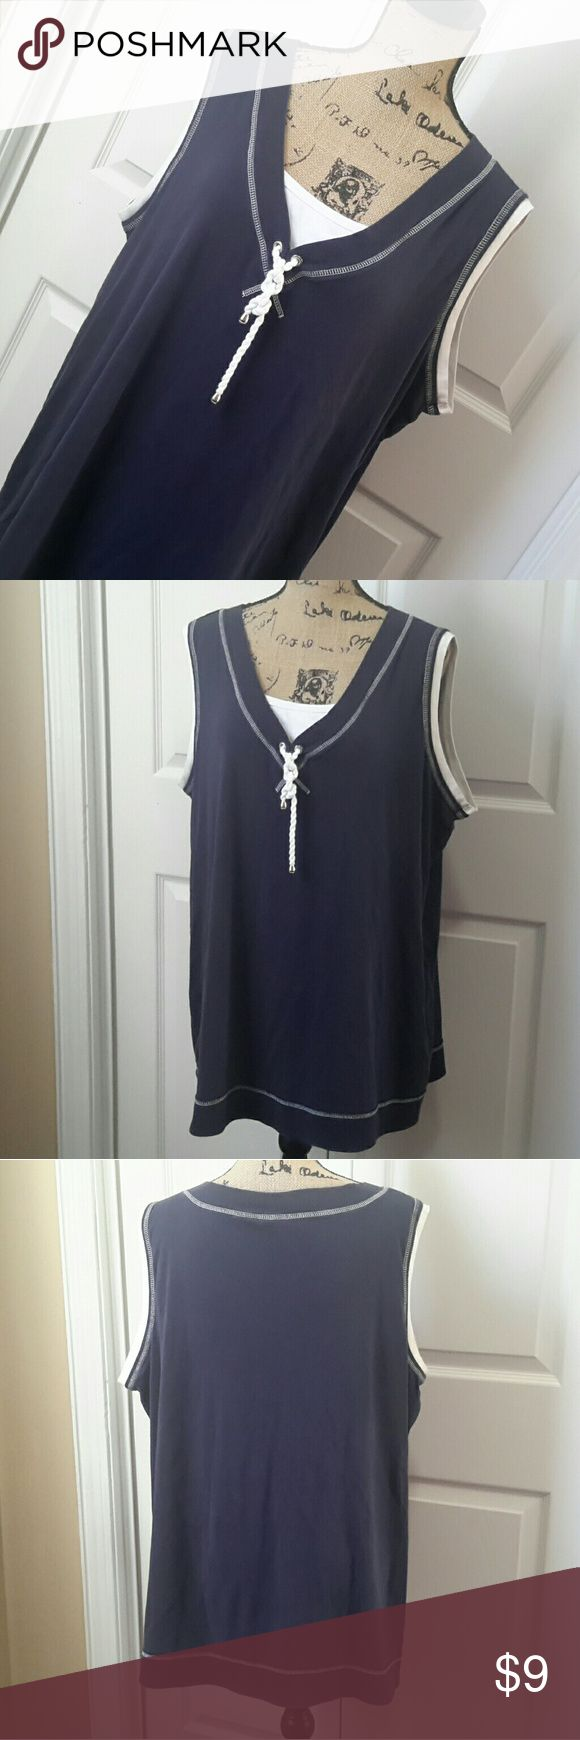 Just My Size Navy and White Tank Top Navy tank top trimmed in white with rope tie at neckline Slight discoloration  on white inset at neckline (see pic #5) cannot be seen when wearing Size 3X (22W/24W) Otherwise normal wash wear  Measurements in photos Just My Size Tops Tank Tops